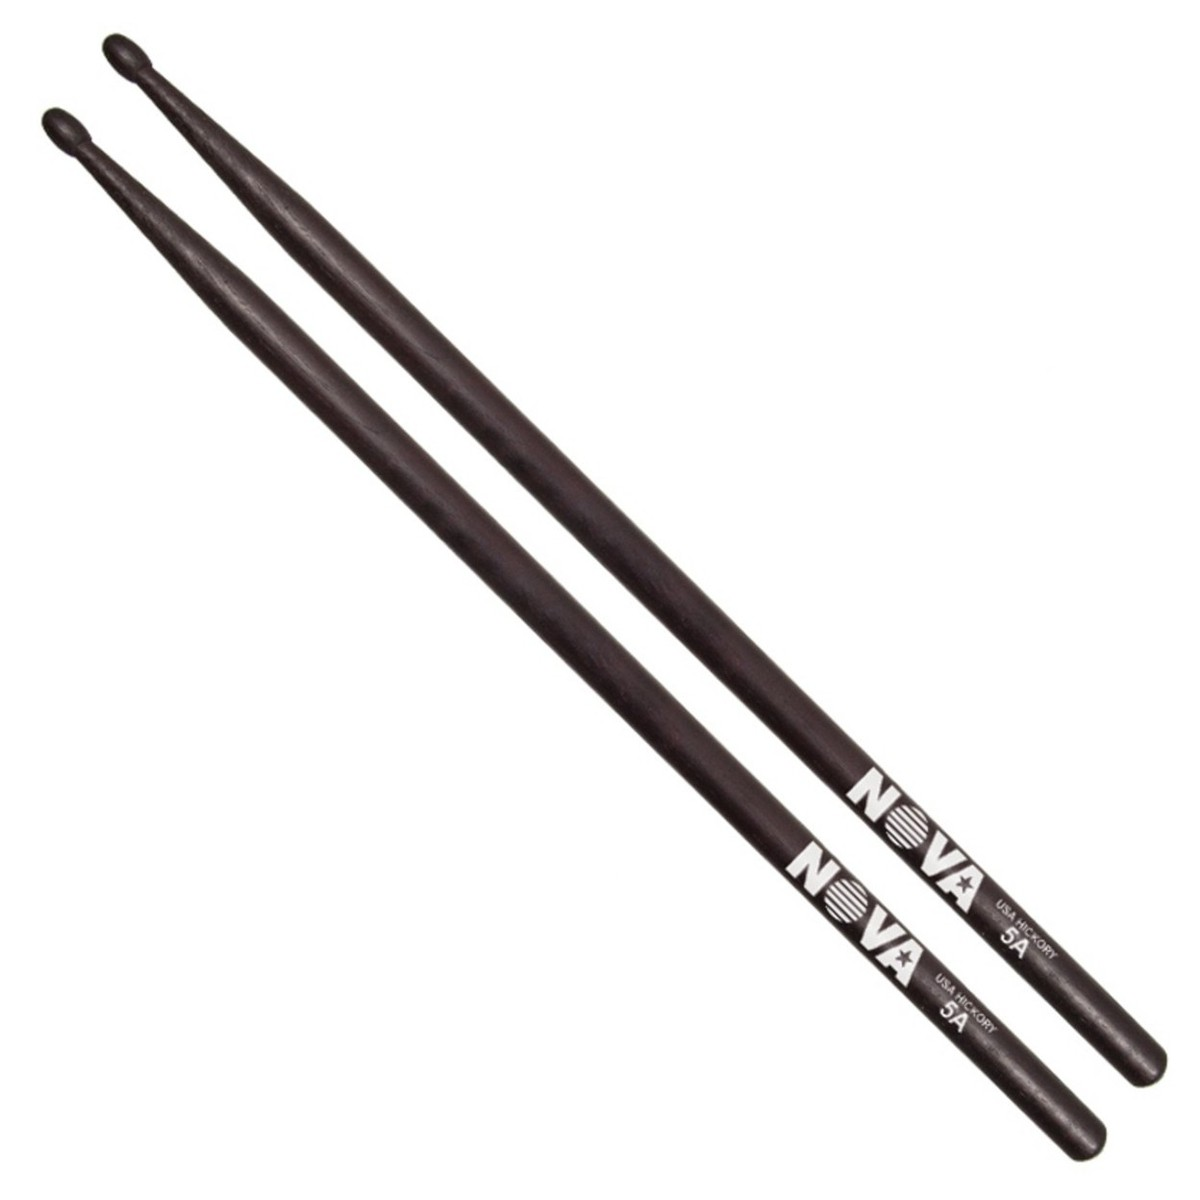 vic firth nova 5a hickory drumsticks black finish at gear4music. Black Bedroom Furniture Sets. Home Design Ideas